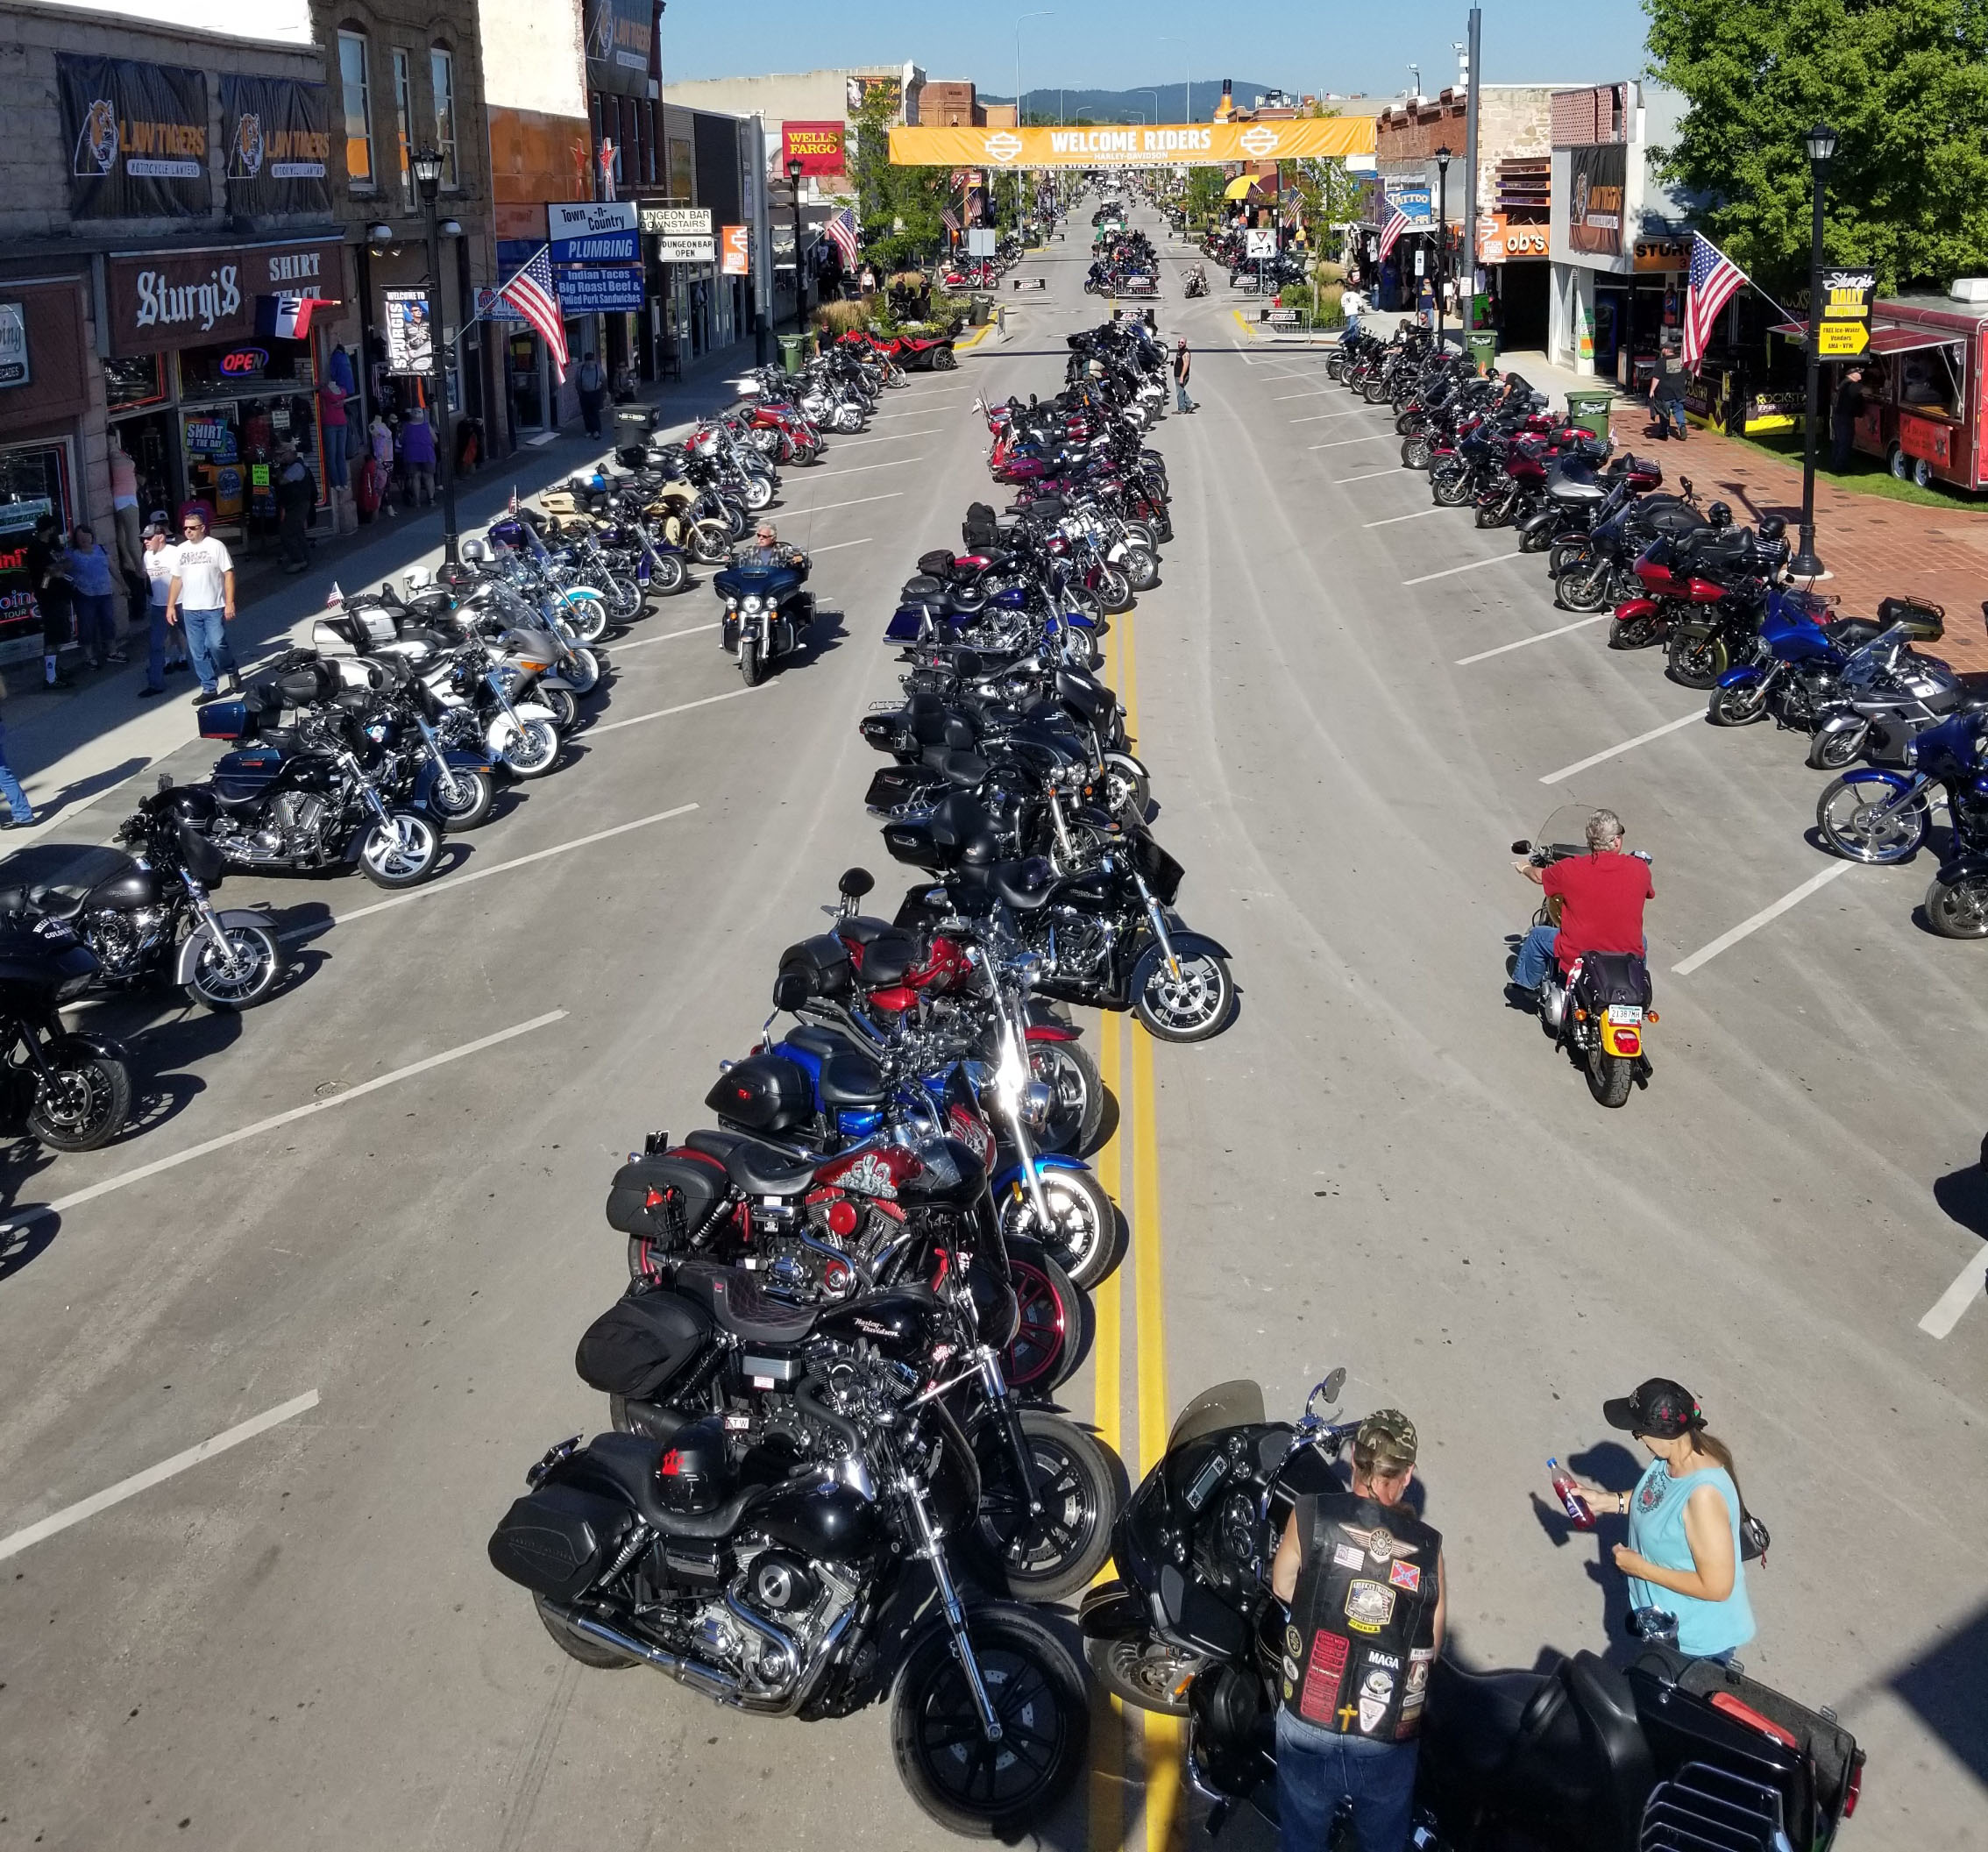 A motorcycle rally that brings tens of thousands of tourists to a small South Dakota city is about to begin